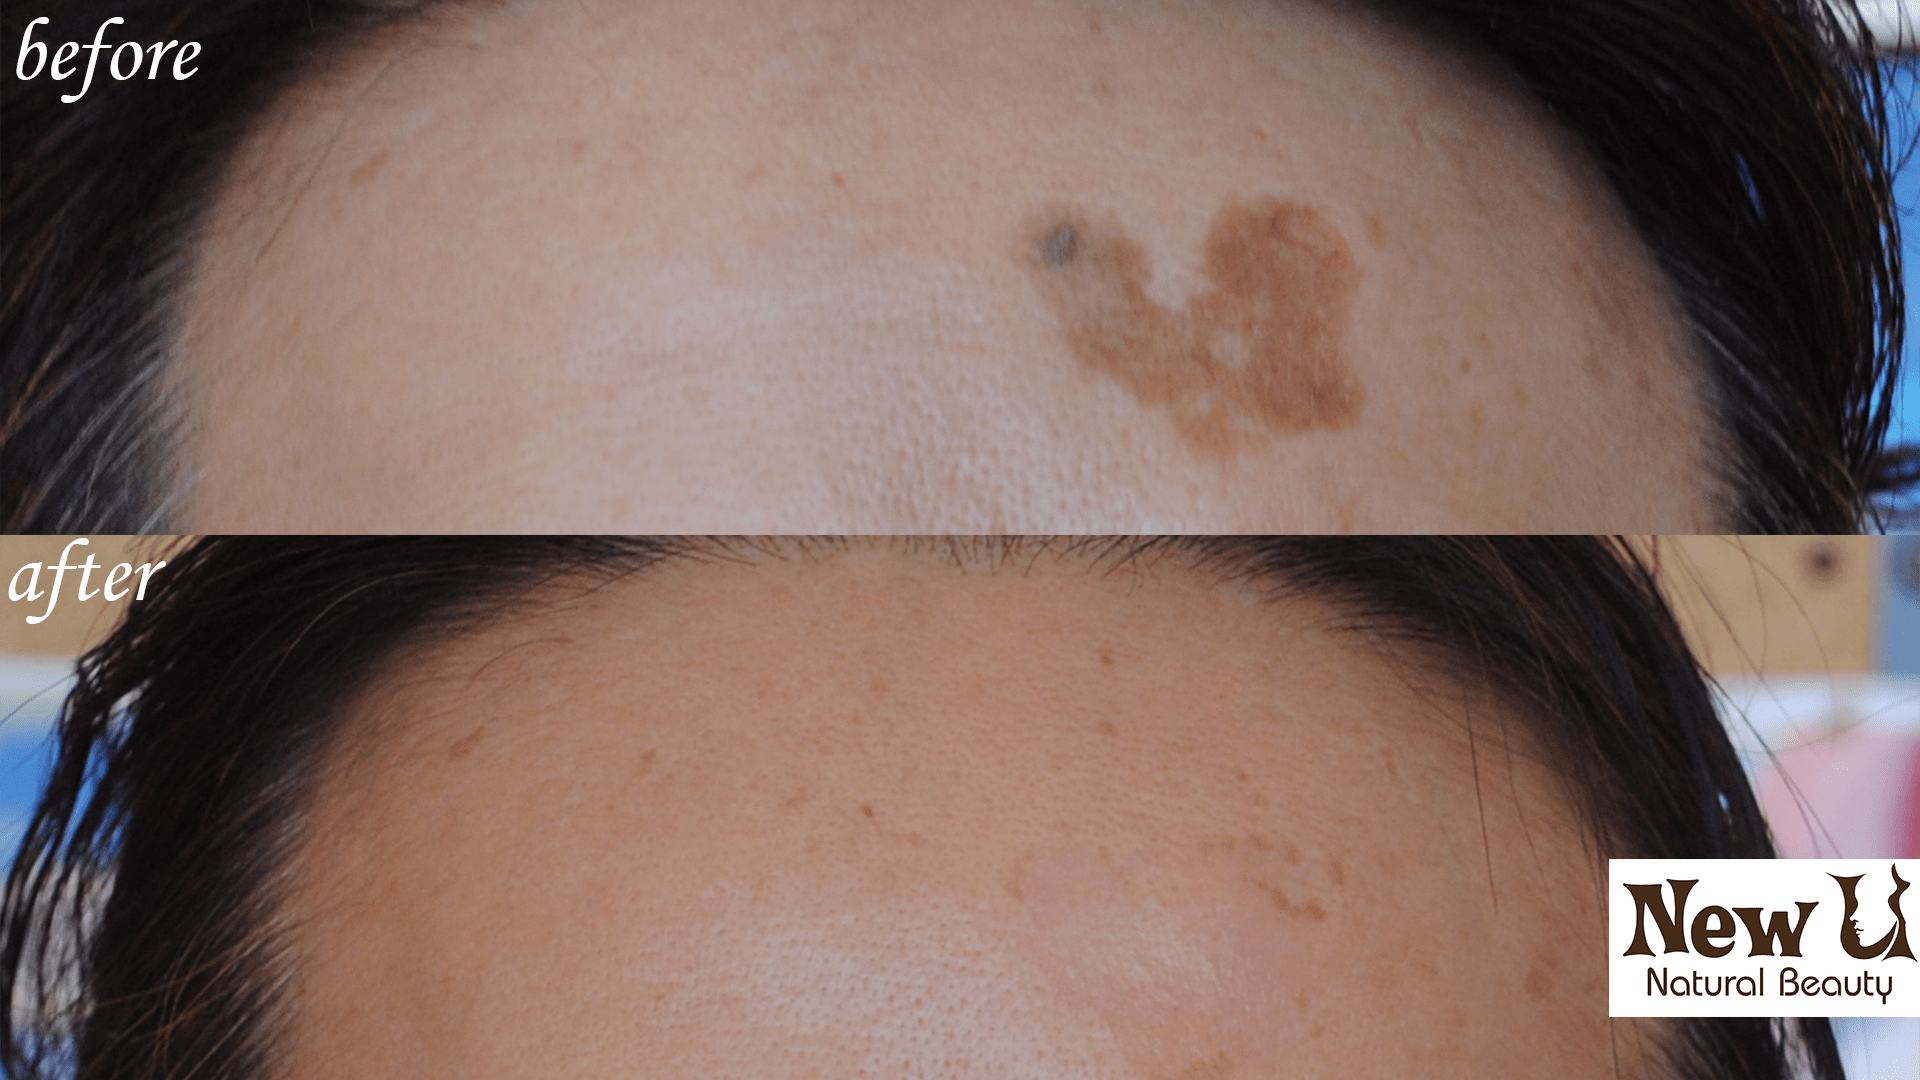 Skin Pigmentation 5 Las Vegas Before & After